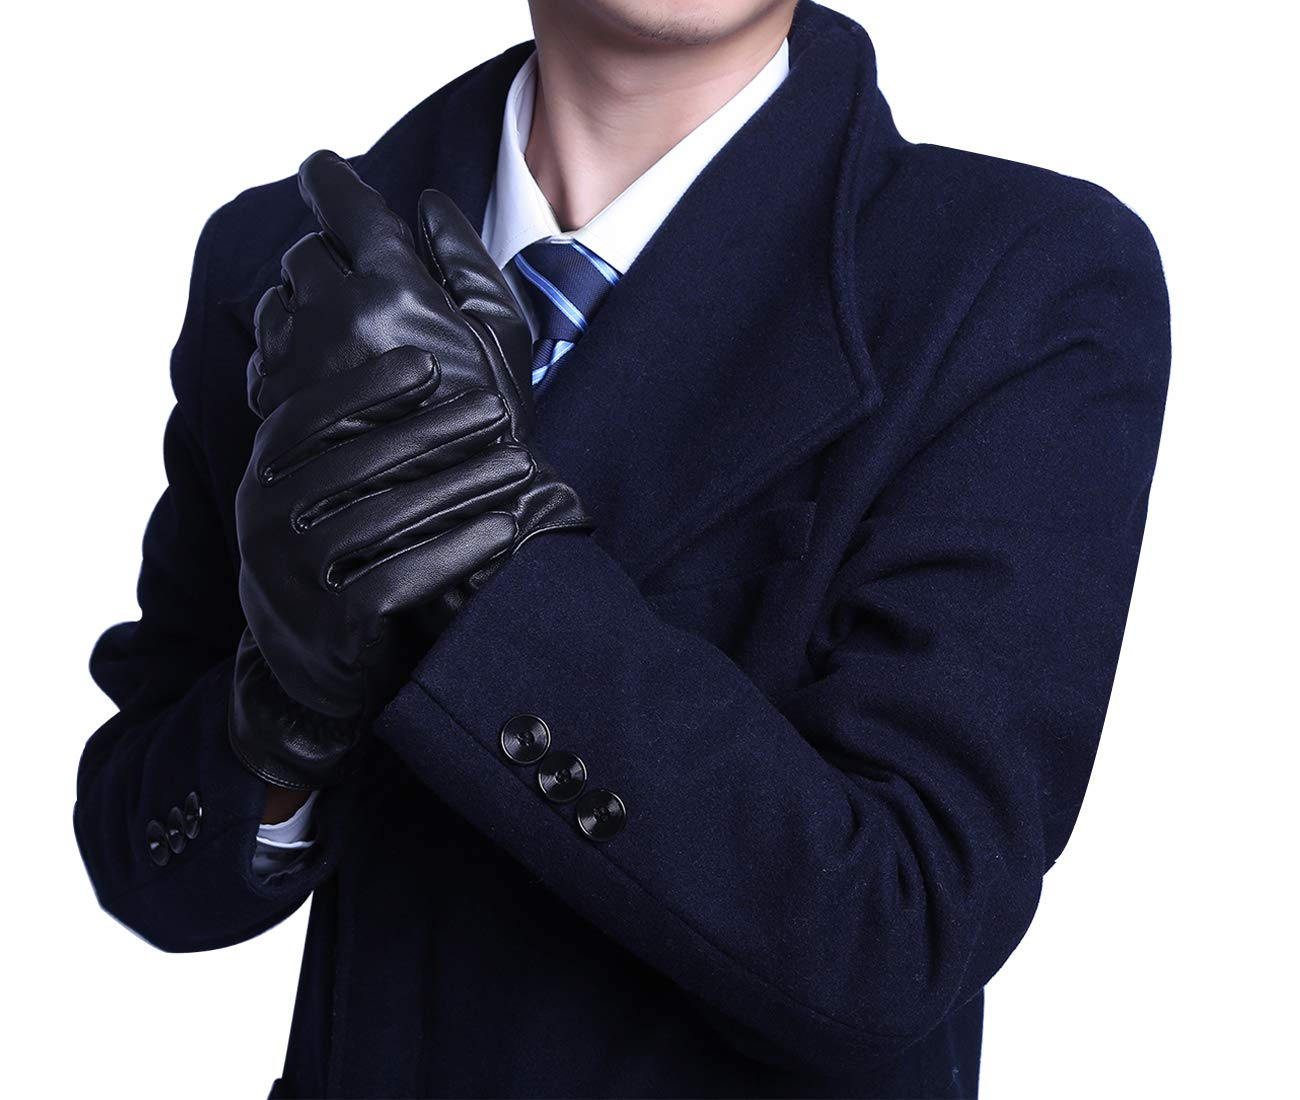 BOTINDO Touchscreen Leather Gloves, Lined Winter Driving Gloves for Men (M)